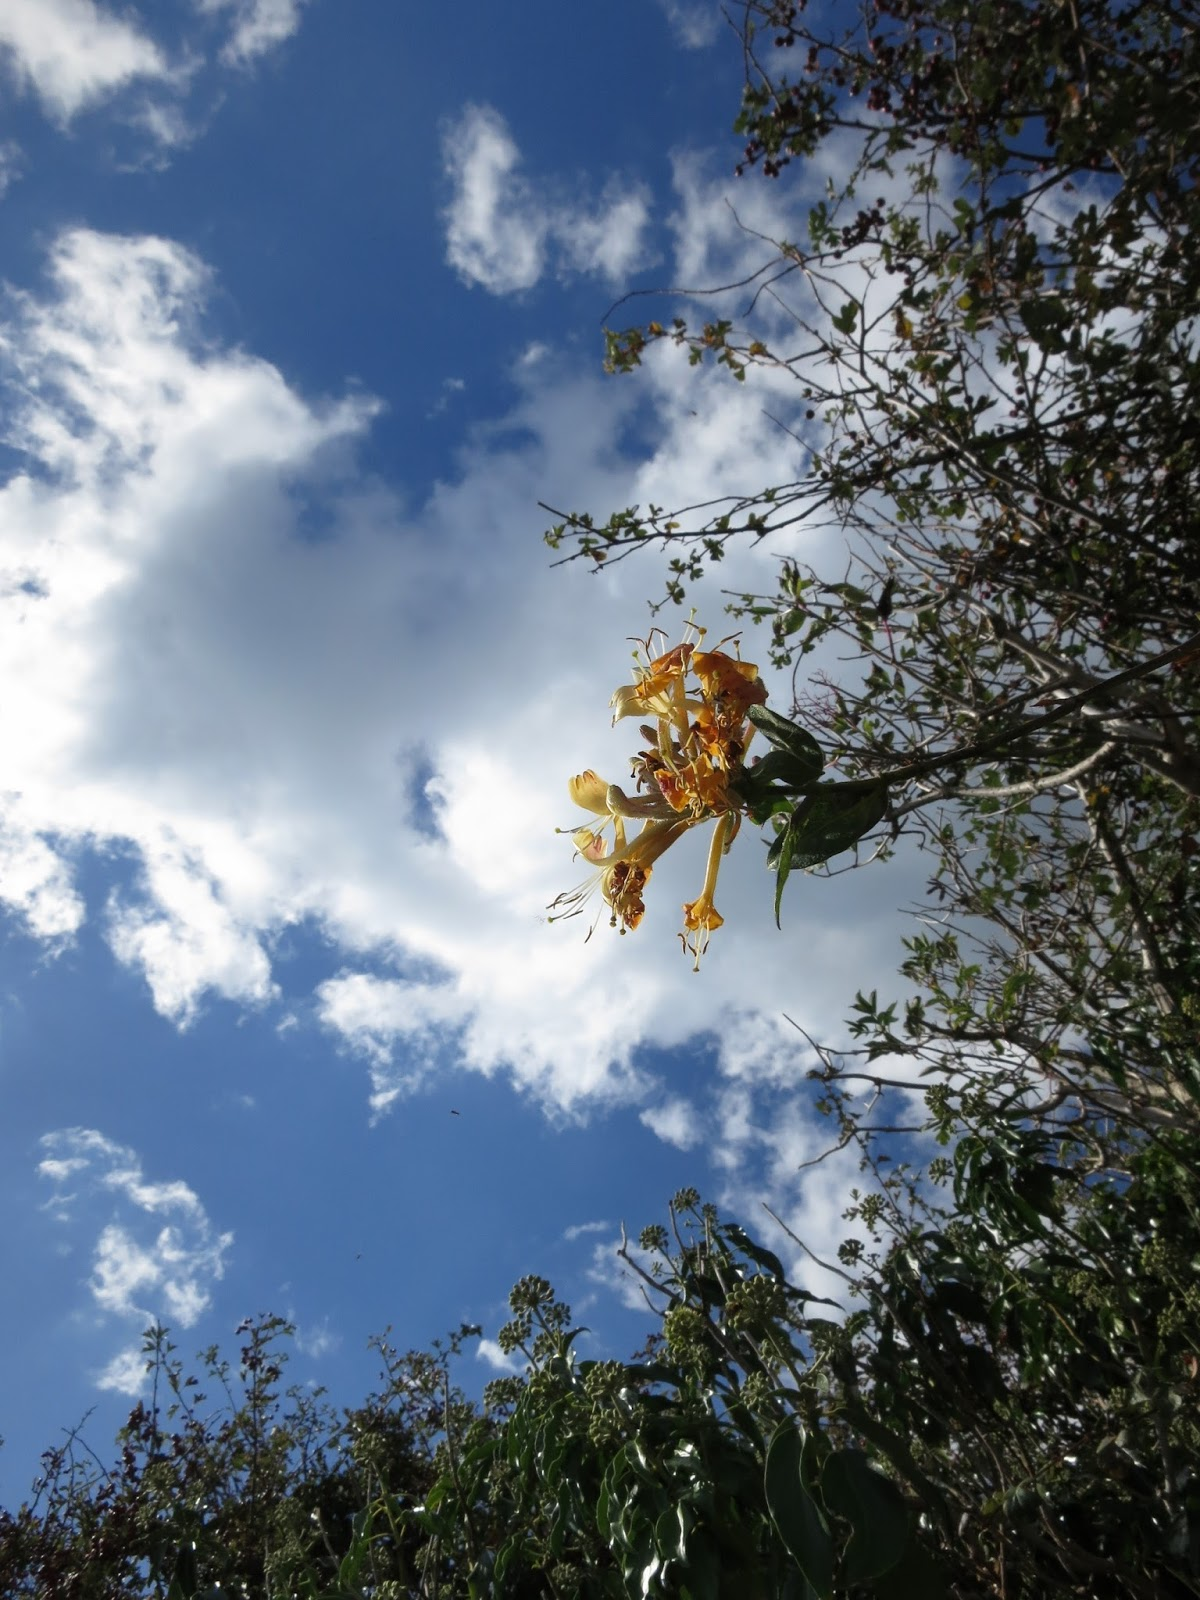 Single honeysuckle (Lonicera) flower leaning from hedgerow in front of dramatci sky